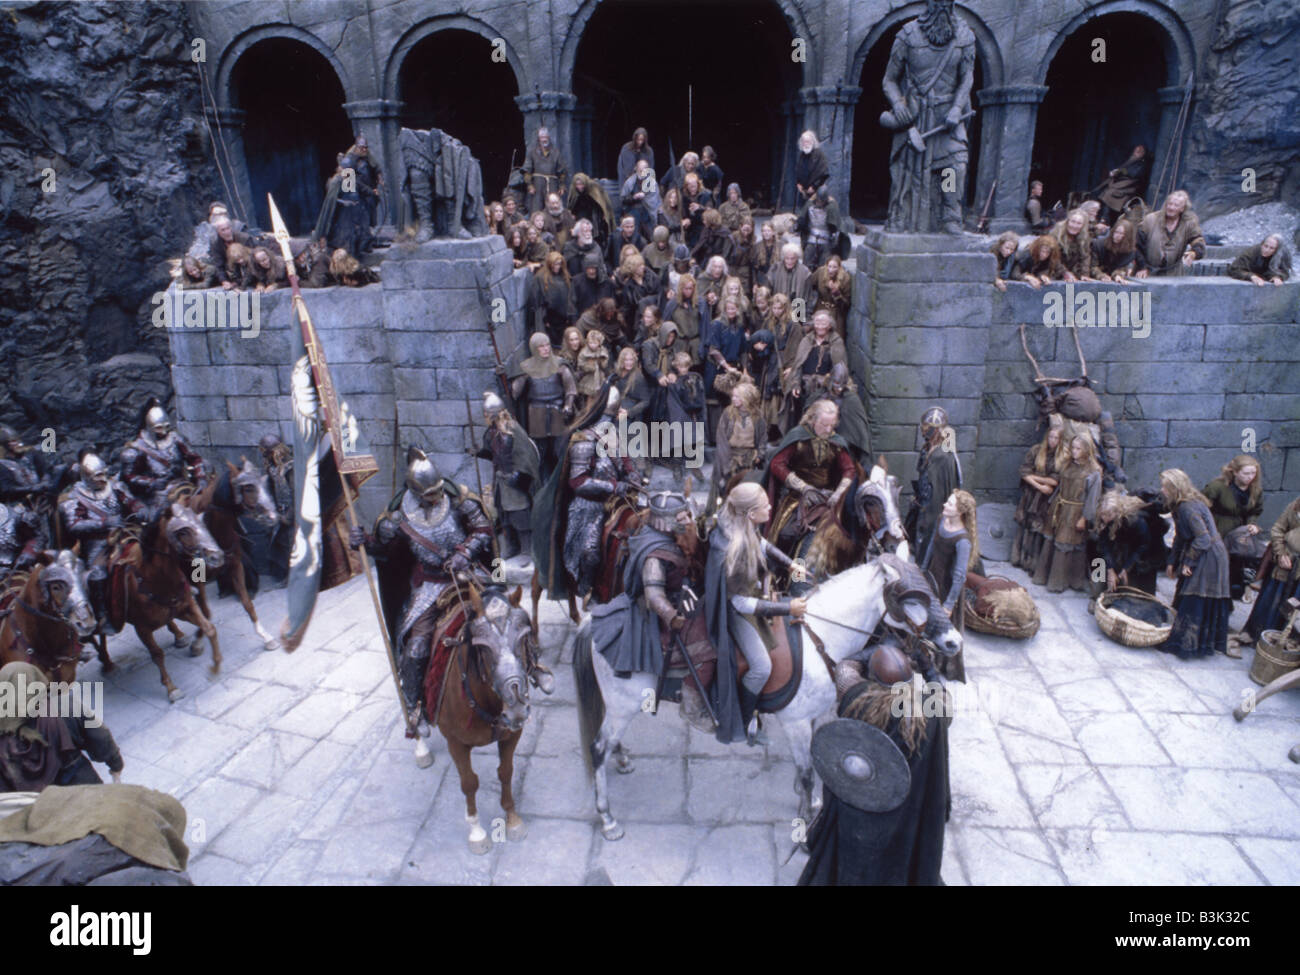 LORD OF THE RINGS : THE RETURN OF THE KING 2003  NewLine film - Stock Image